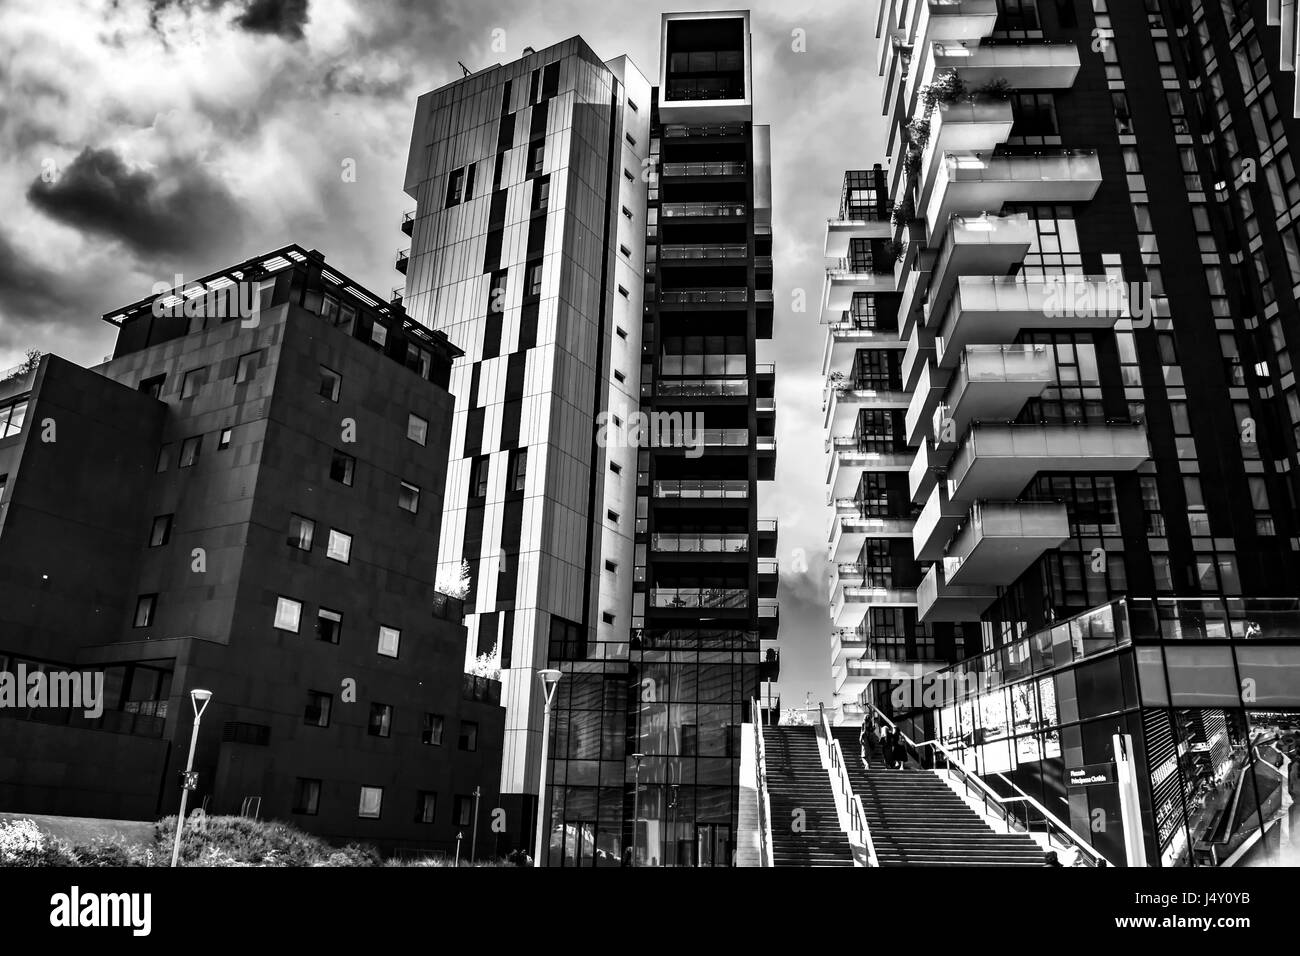 A black and white photography of modern buildings architecture in milan dowtnown with a cloudy sky on background